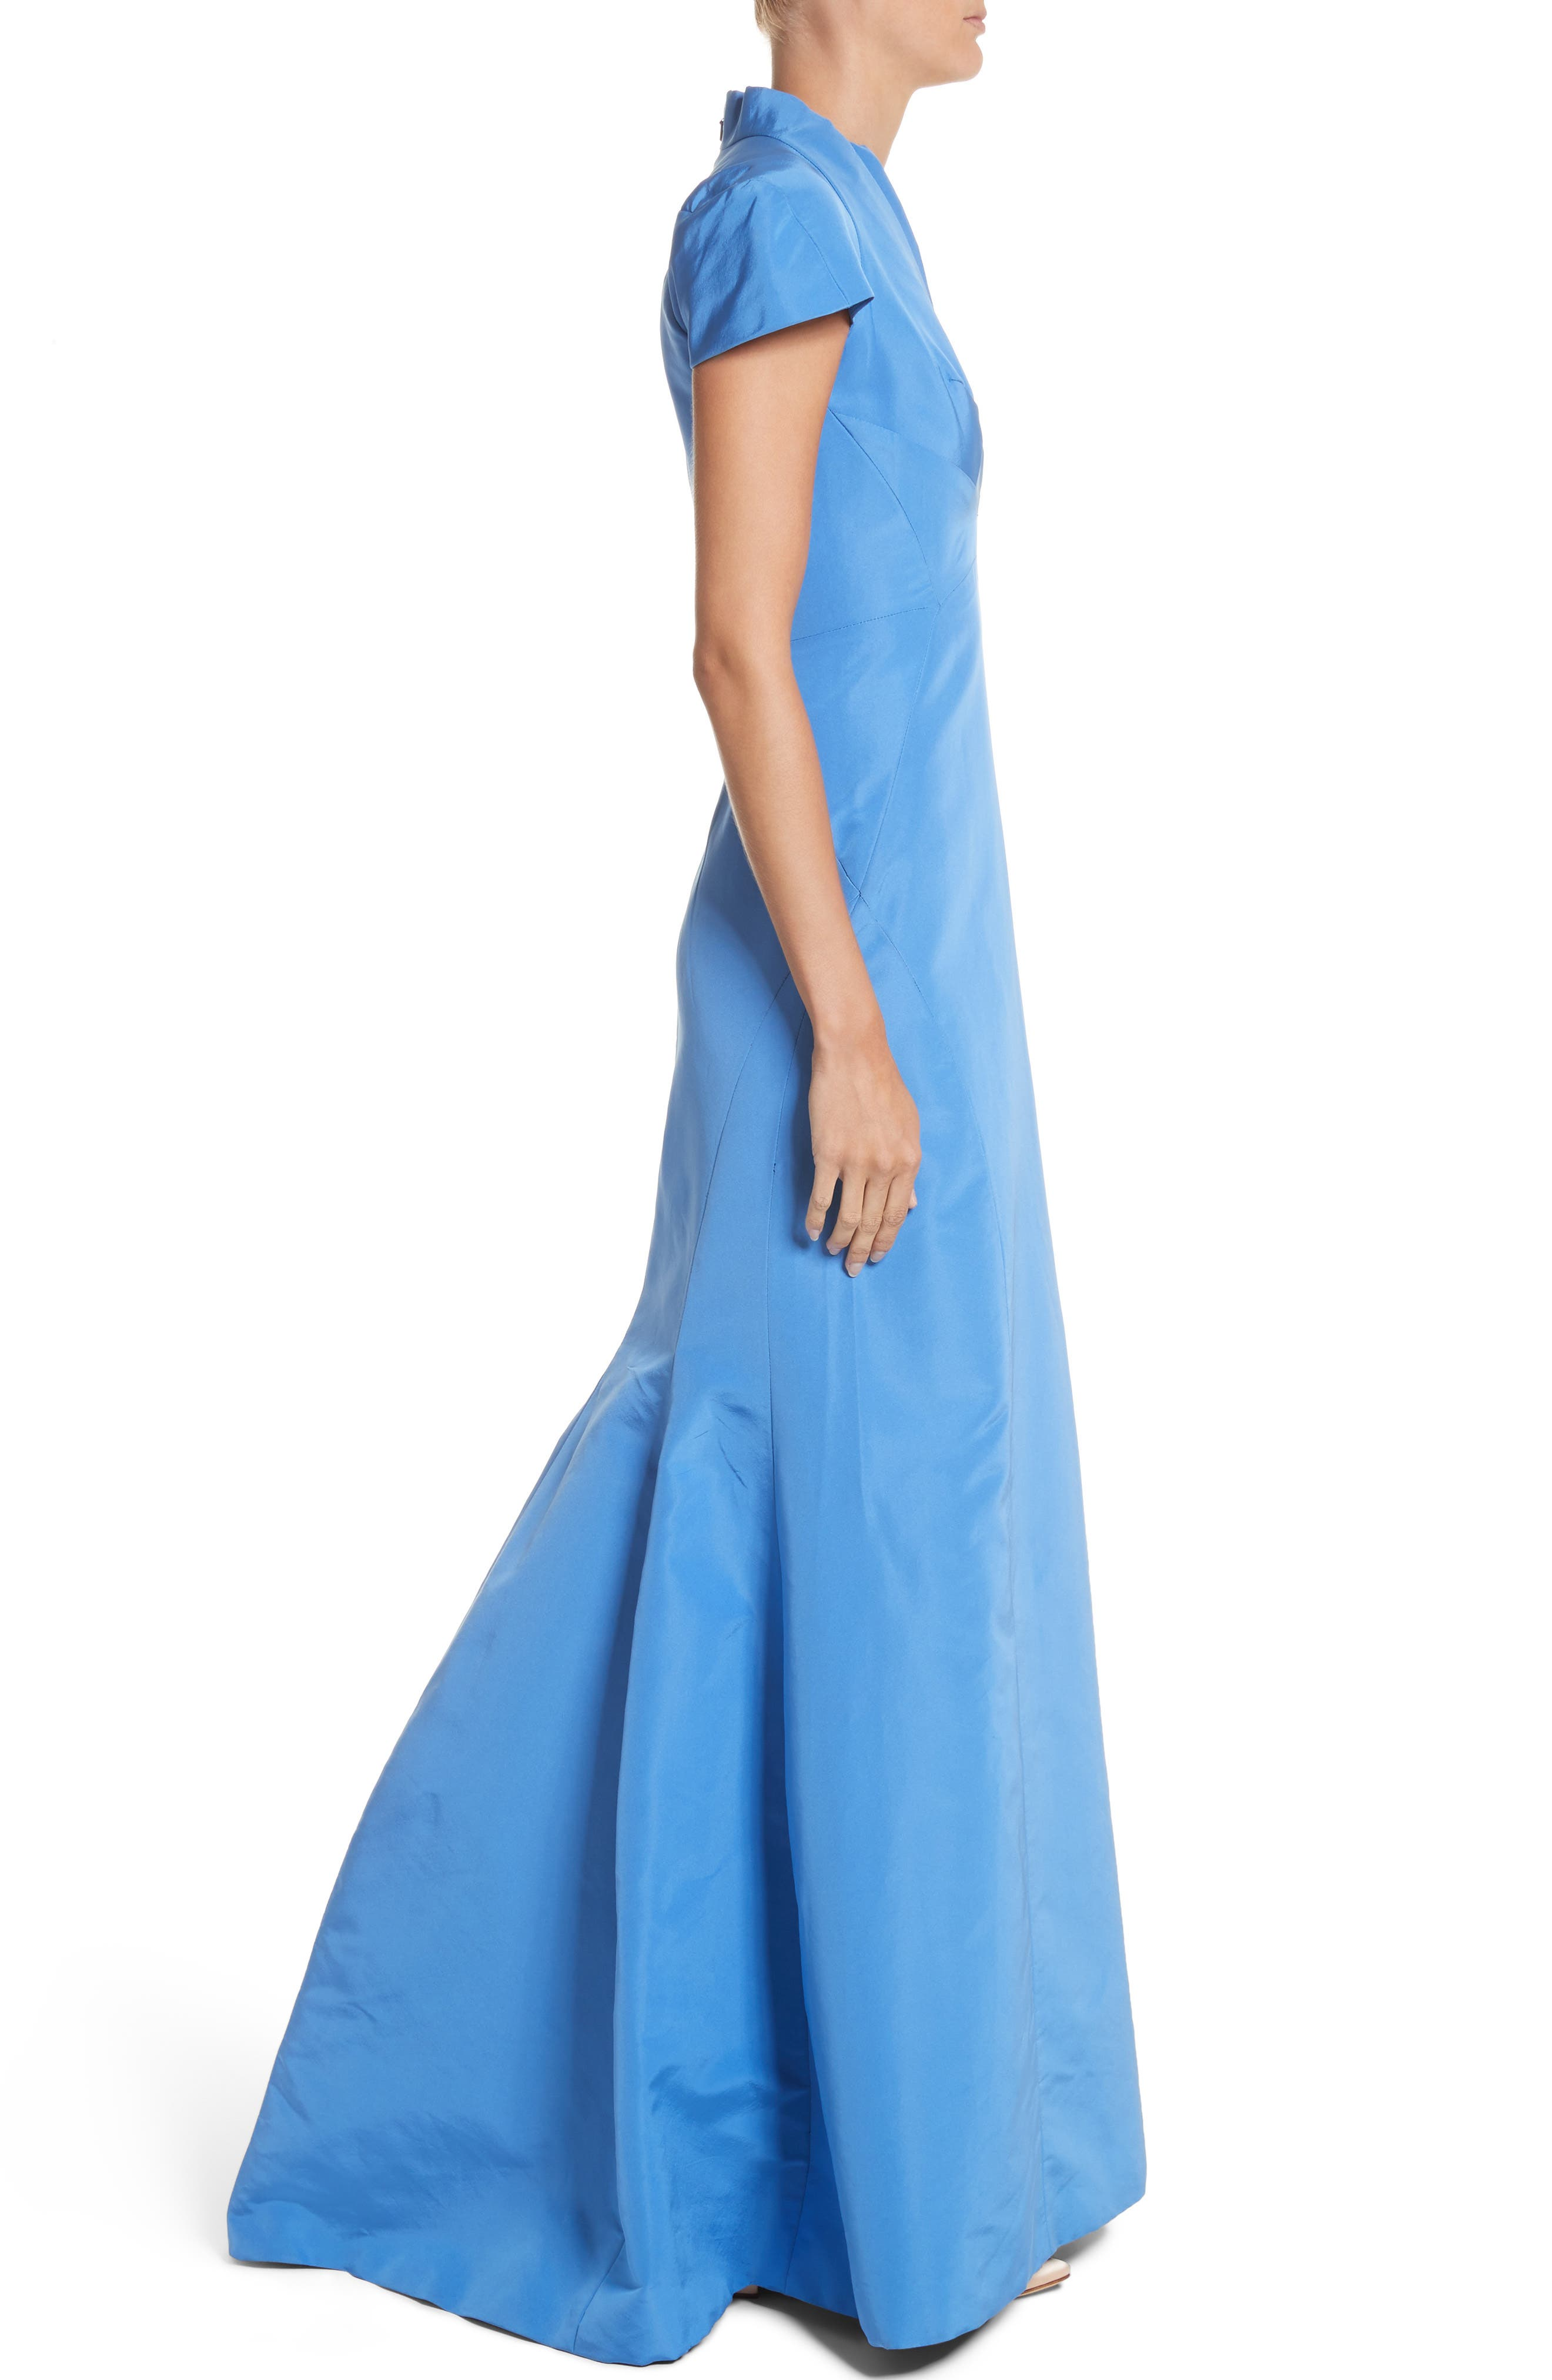 Alternate Image 3  - Zac Posen Silk Faille Short Sleeve Mermaid Gown